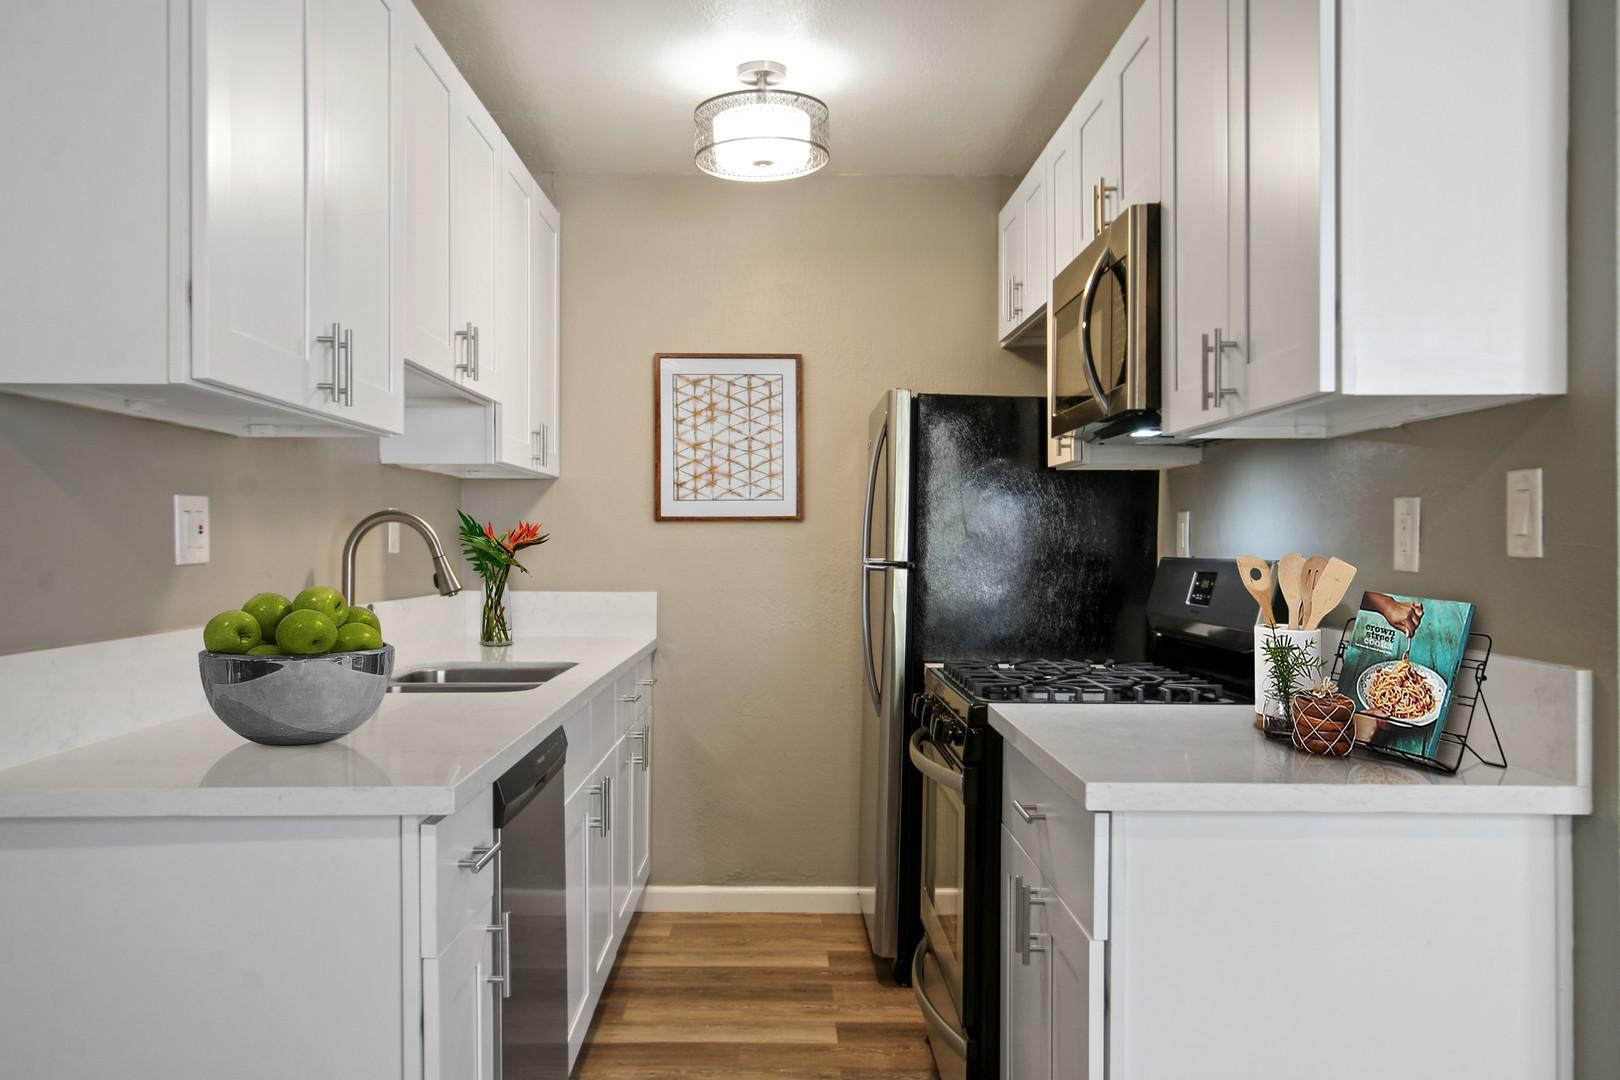 232-236 3rd Ave #1B, Los Angeles, CA - 1,495 USD/ month